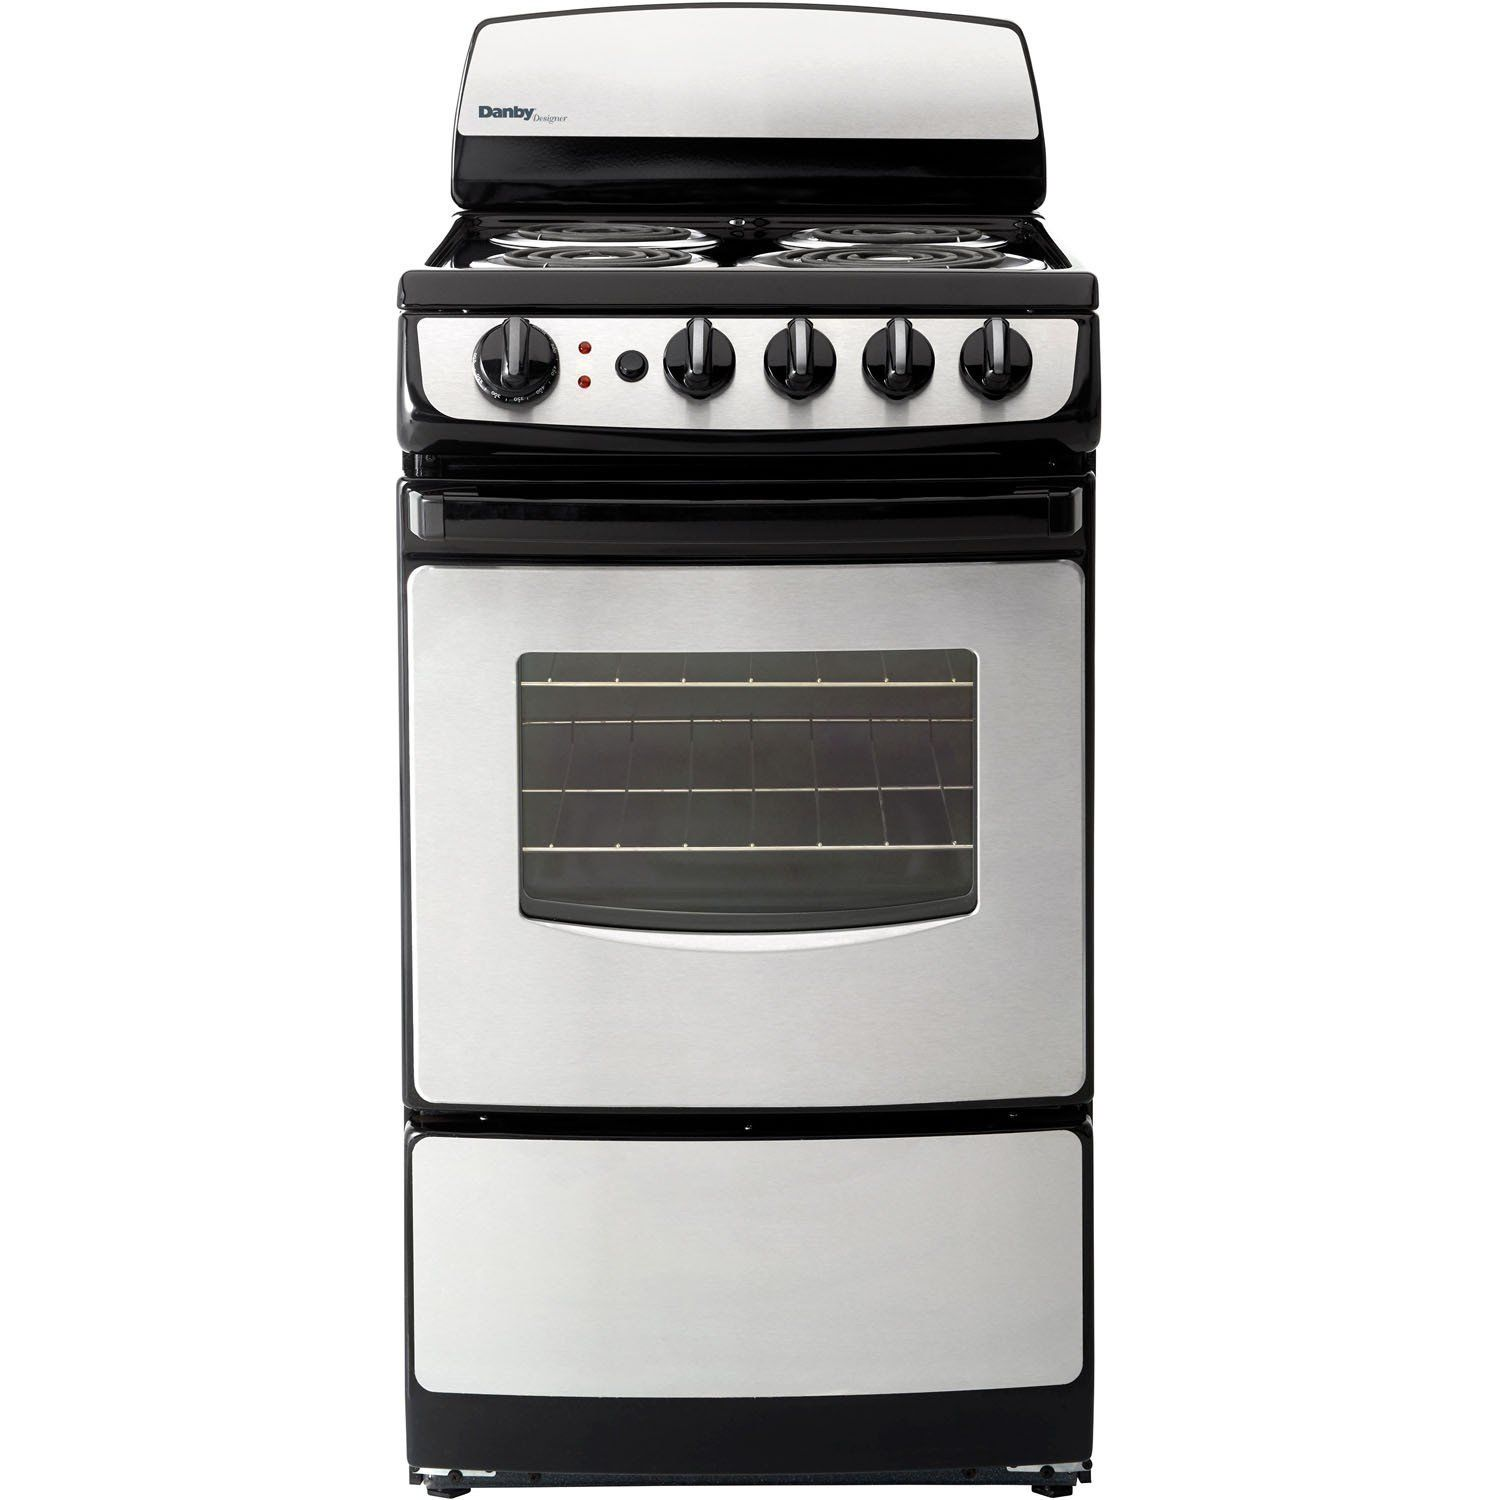 Danby 20 Electric Range Glass Door Window Stainless Front Der201bss Products Single Oven Oven Cleaning Electric Oven